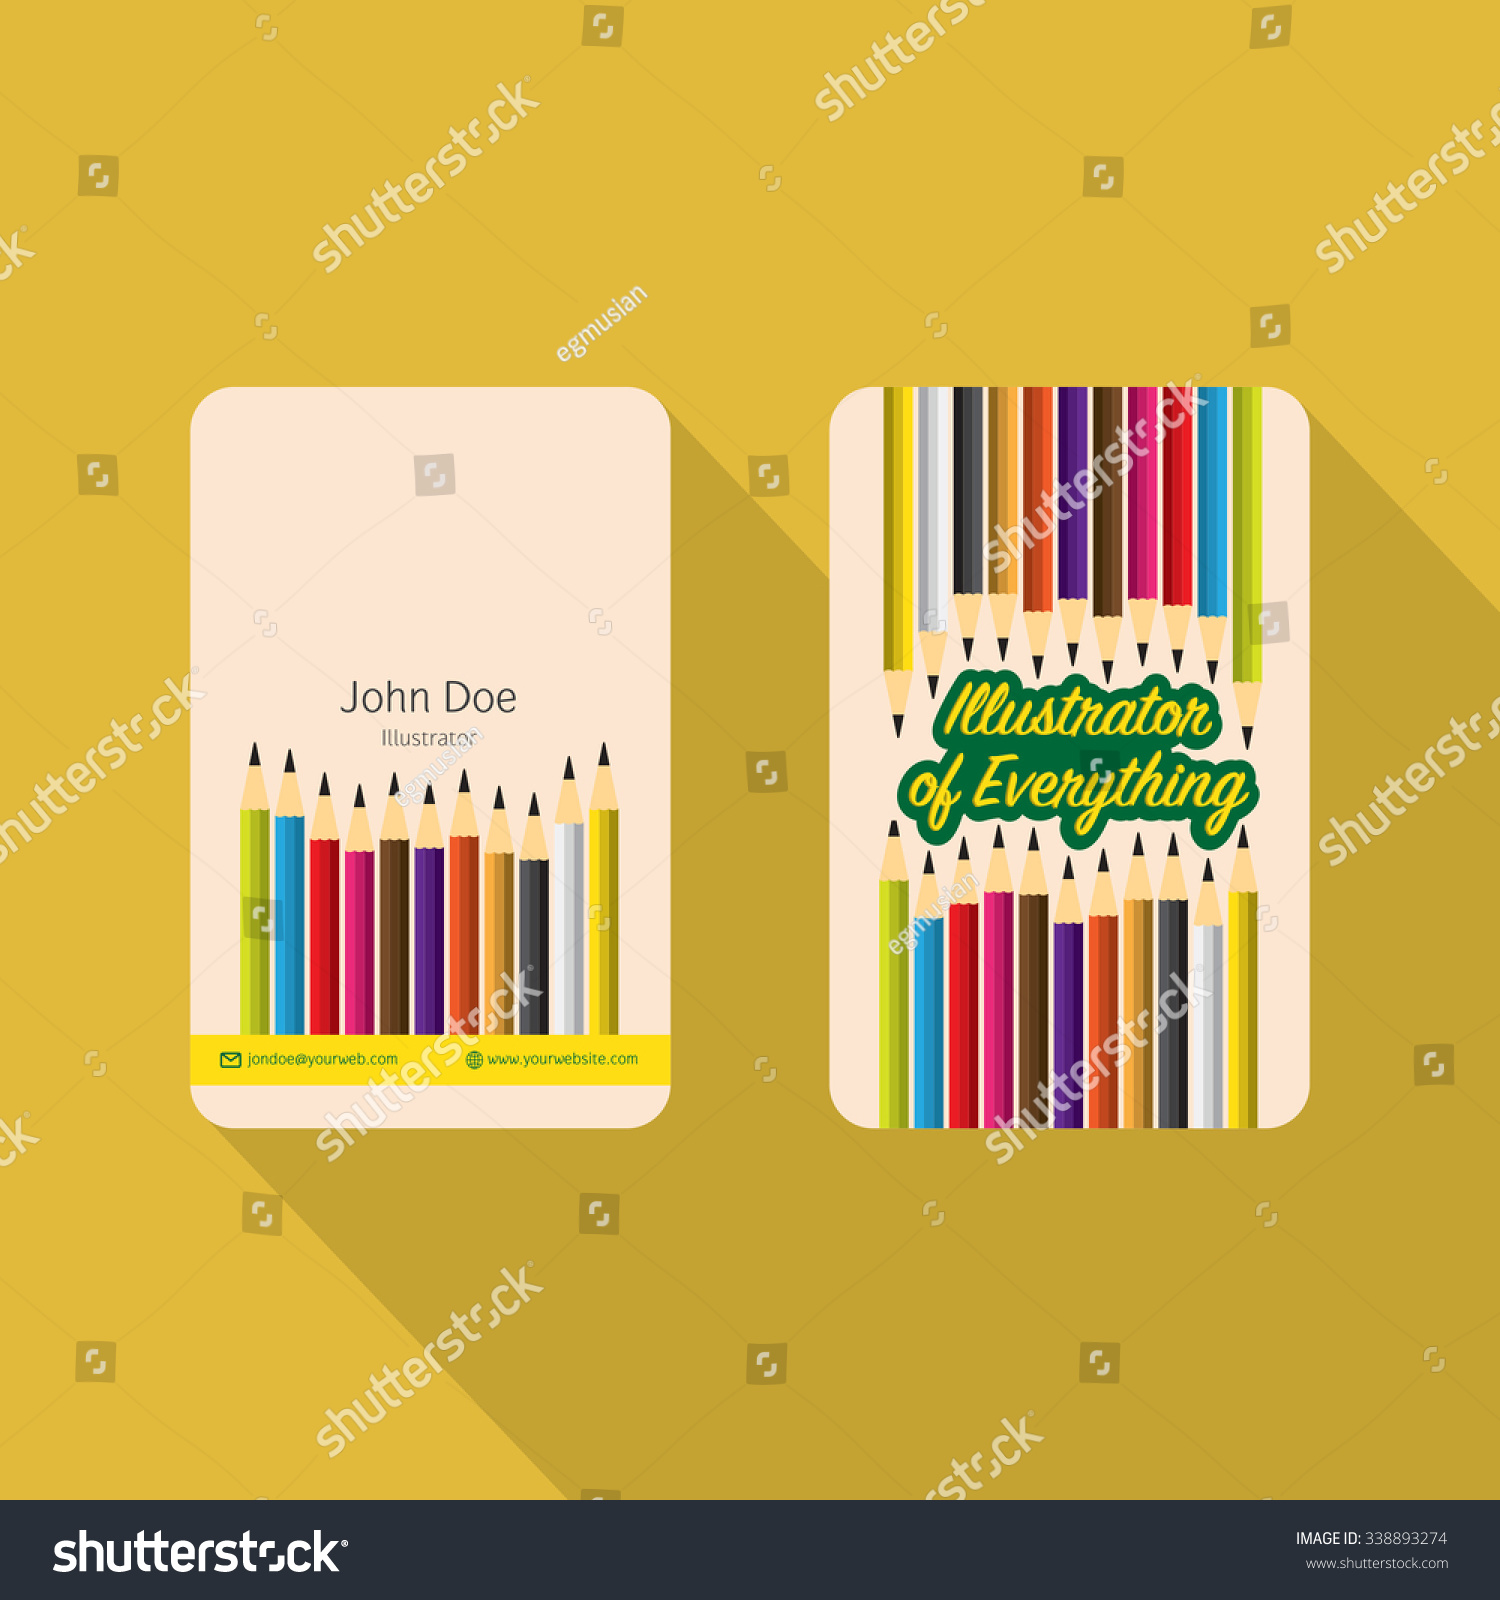 Creative Vector Business Cards Illustrators Stock Vector 338893274 ...